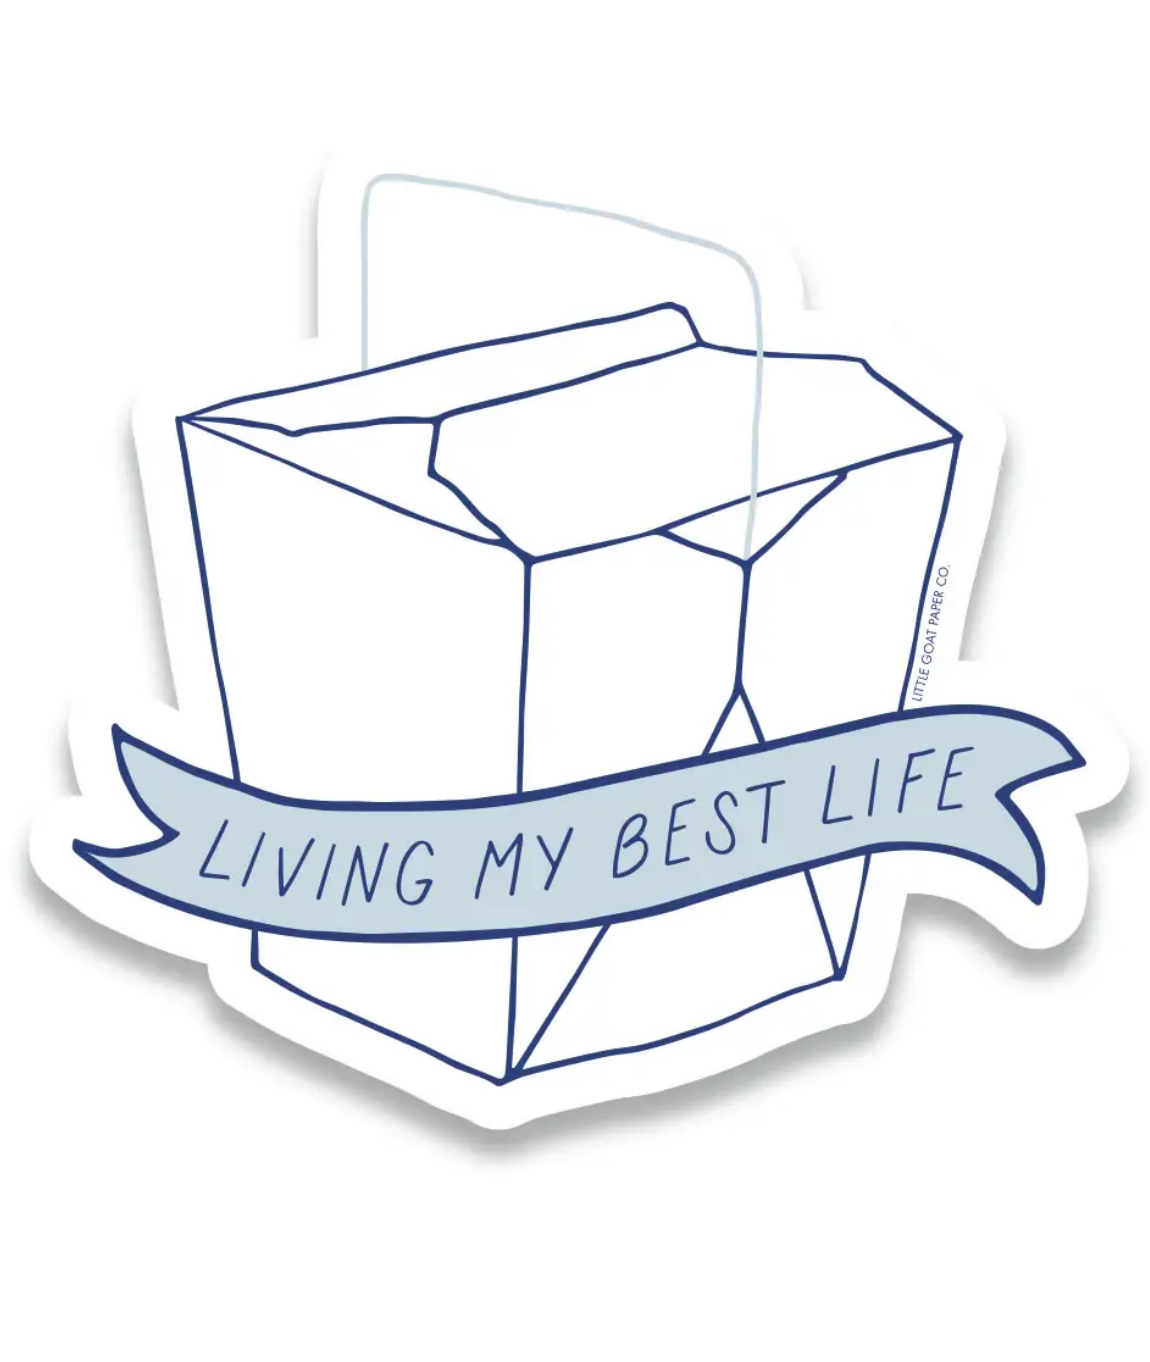 Little Goat Living My Best Life Sticker